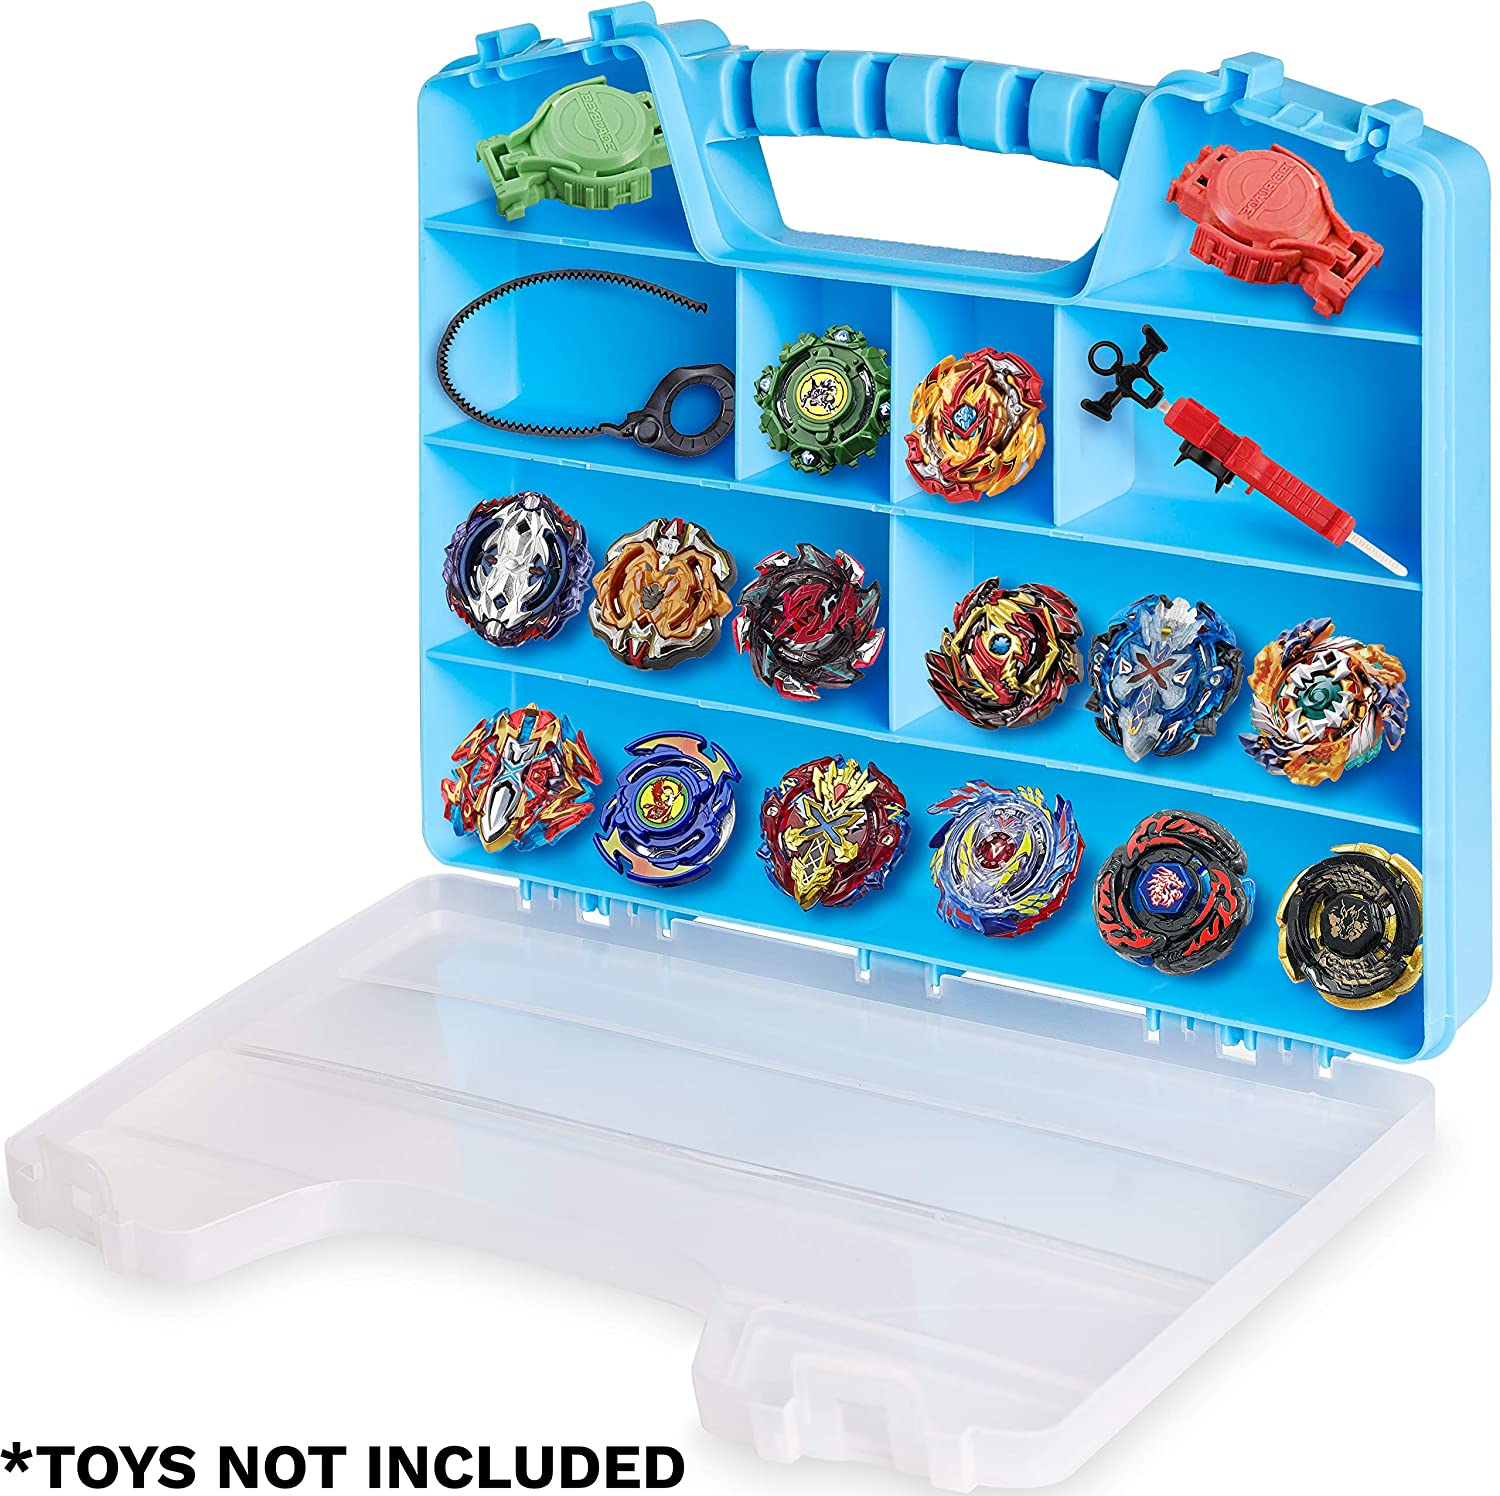 ASH BRAND Super Durable Carrying Case - Battle Spinners Toys Organizer   Blade Storage Box (Hurricane)